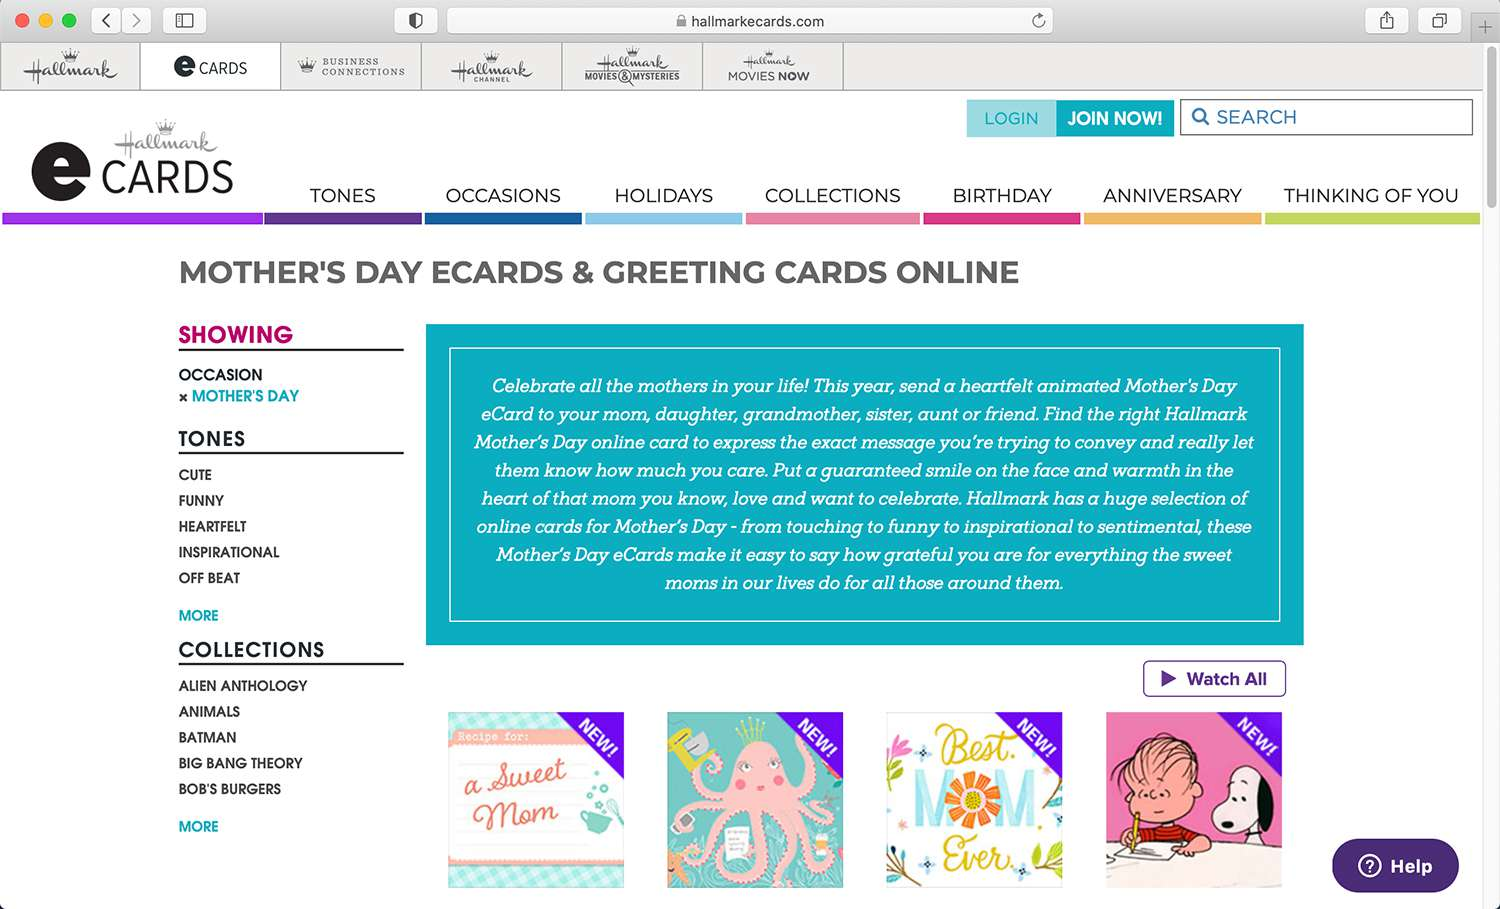 Hallmark e-card site for various holidays and occasions